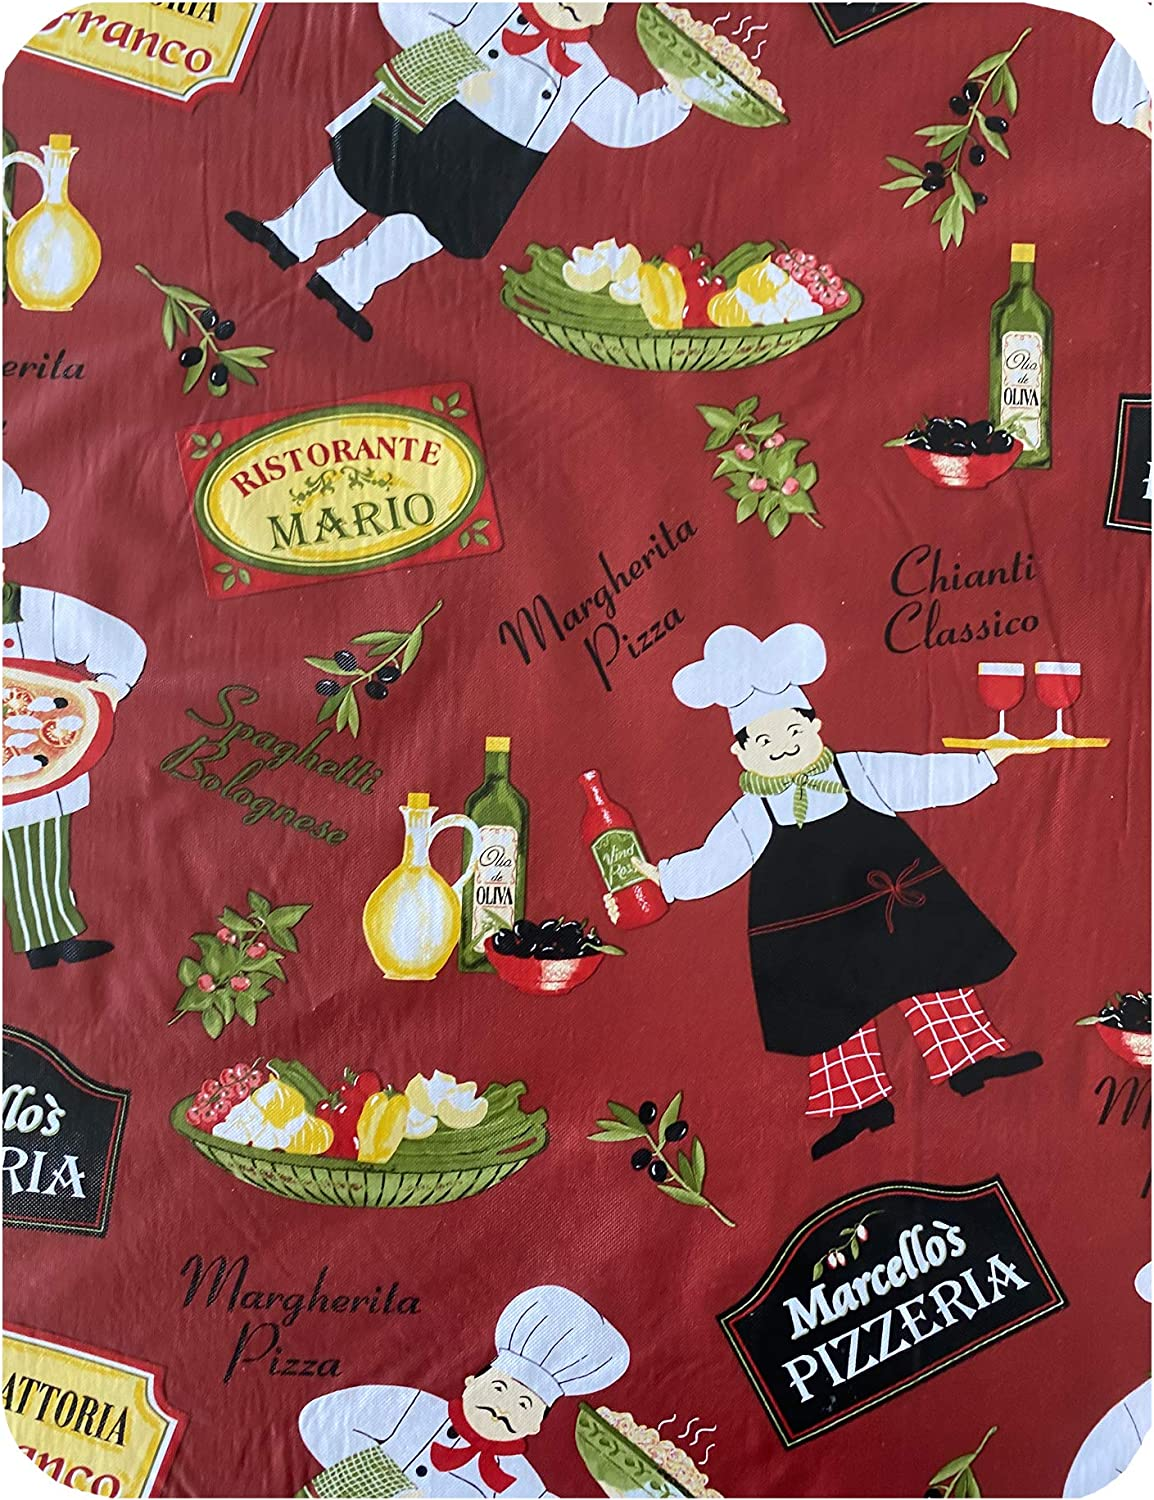 Patio and Kitchen Dining,52 Inch x 52 Inch Square Novelty Chef Indoor//Outdoor Waterproof Tablecloth Newbridge Italian Red Bistro Chef Vinyl Flannel Backed Tablecloth Picnic Barbeque